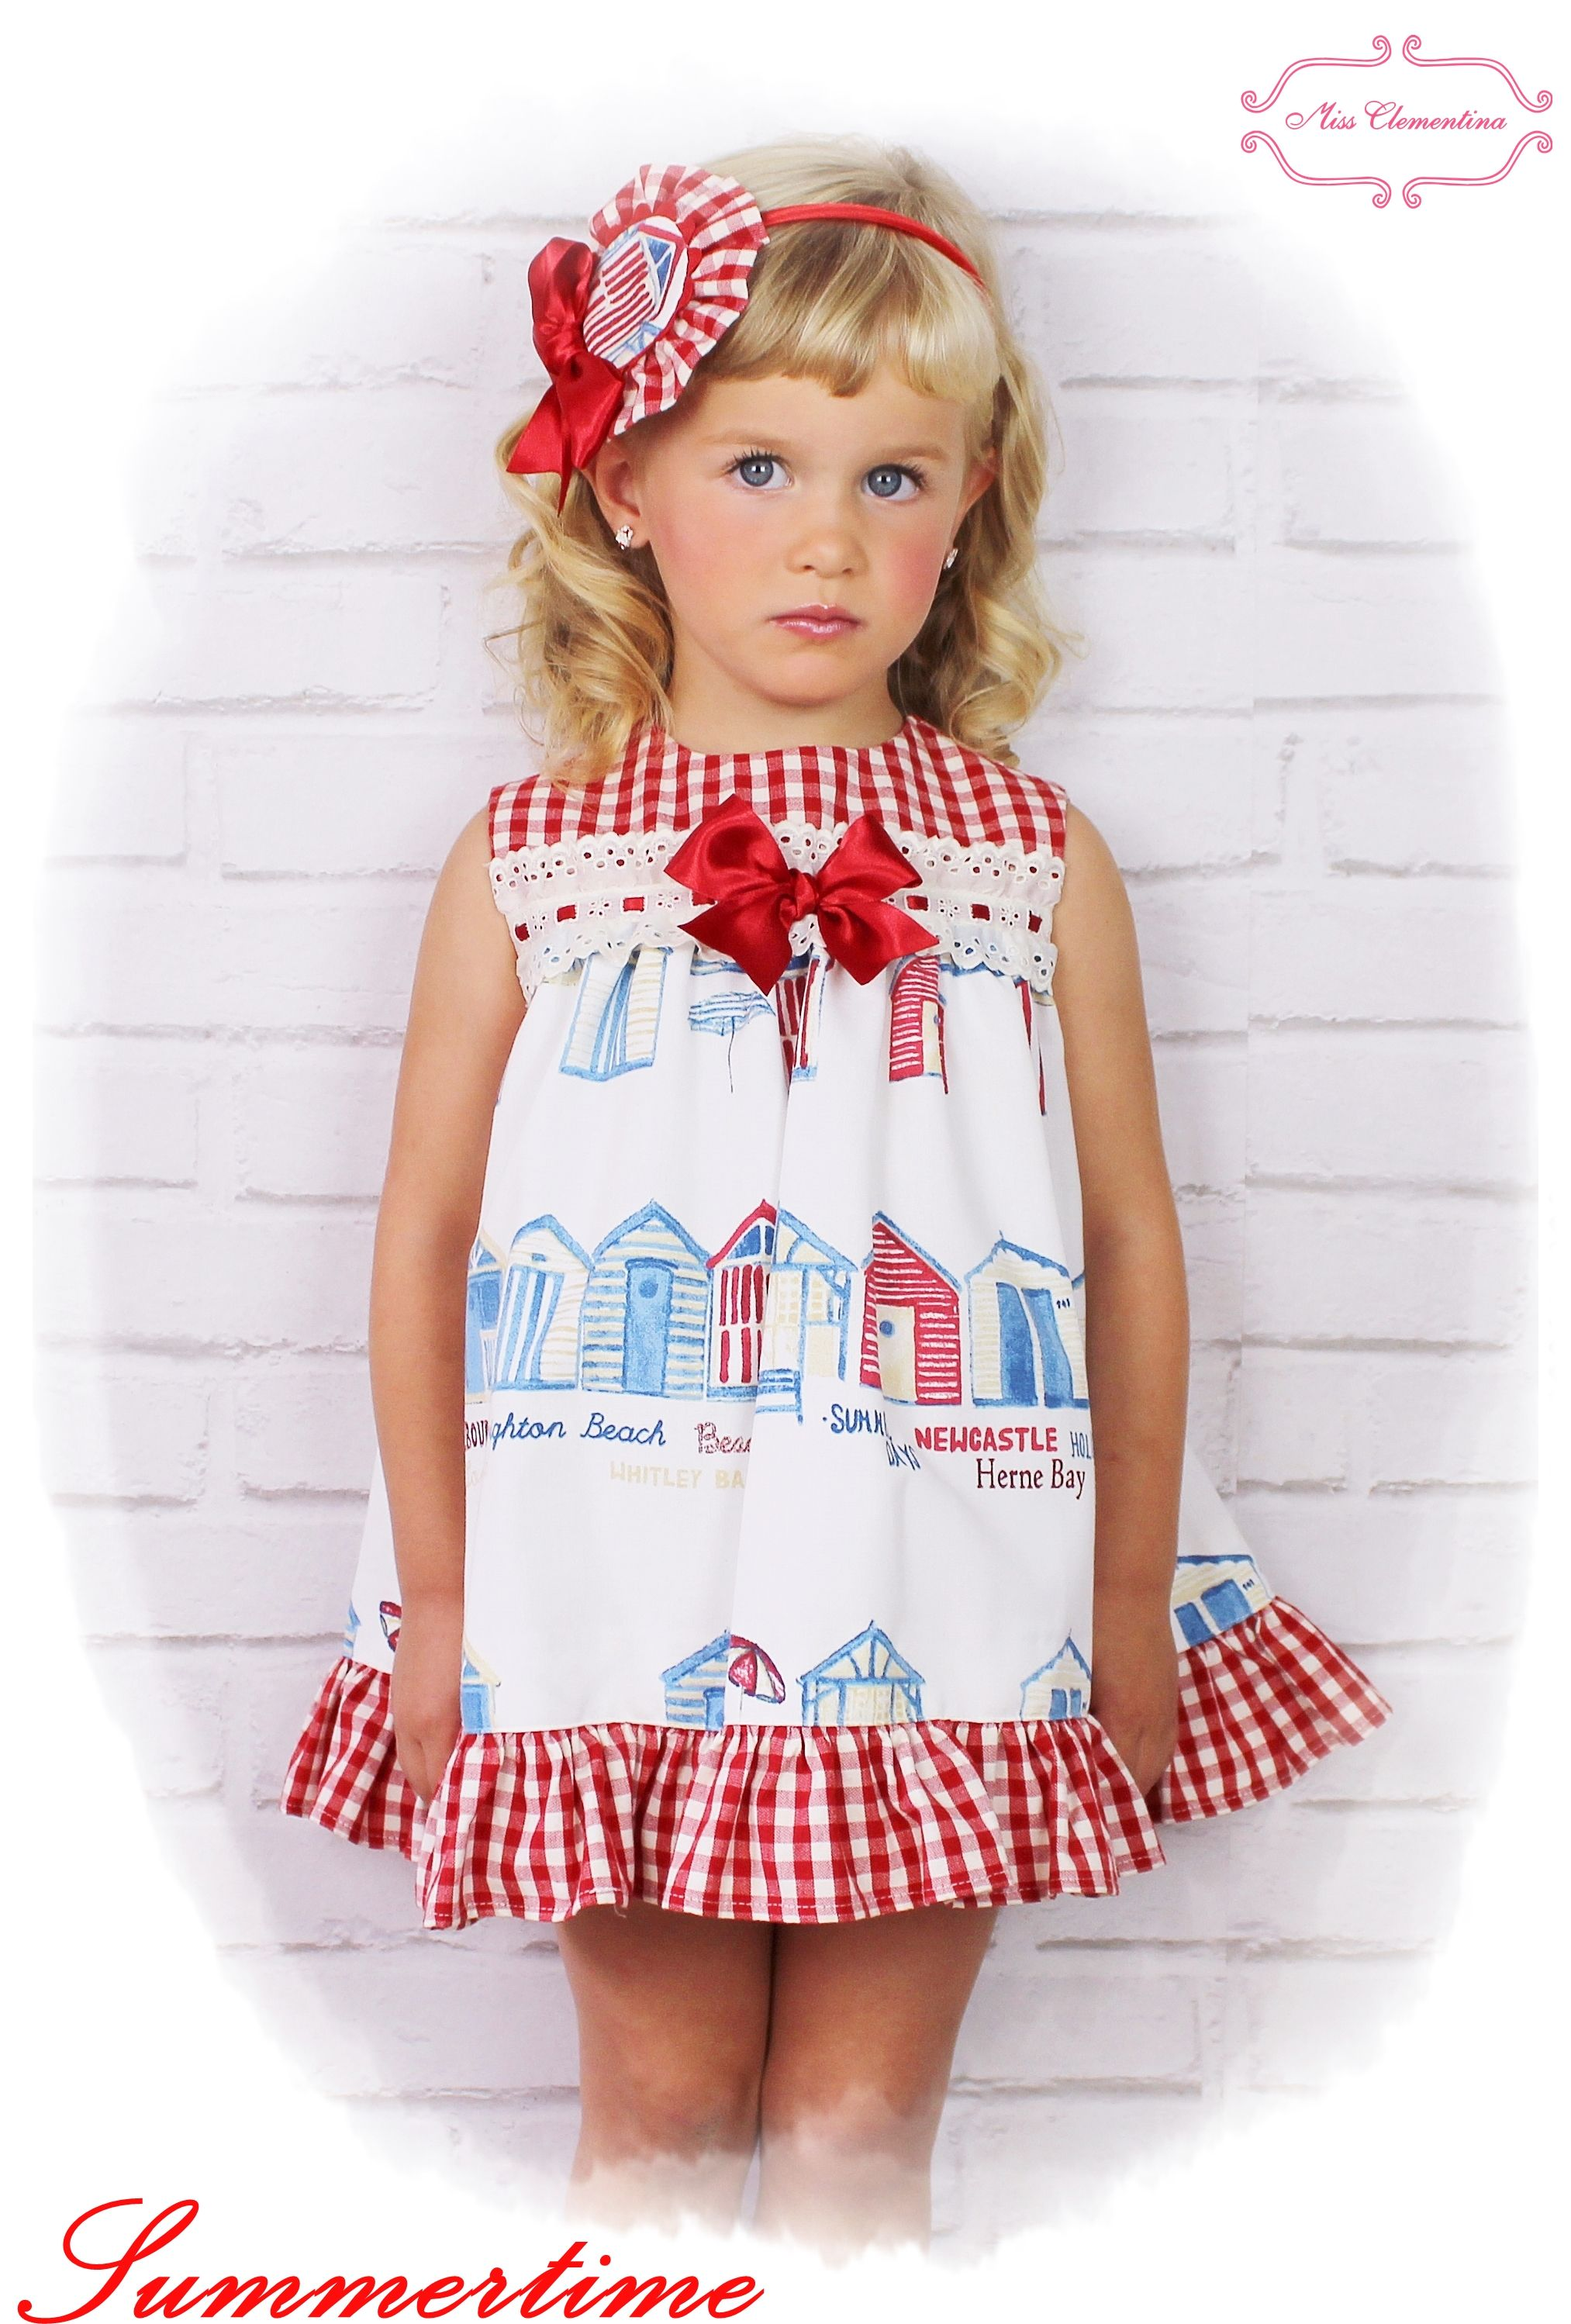 cb04aa35a925 Coleccion Summertime .Miss Clementina